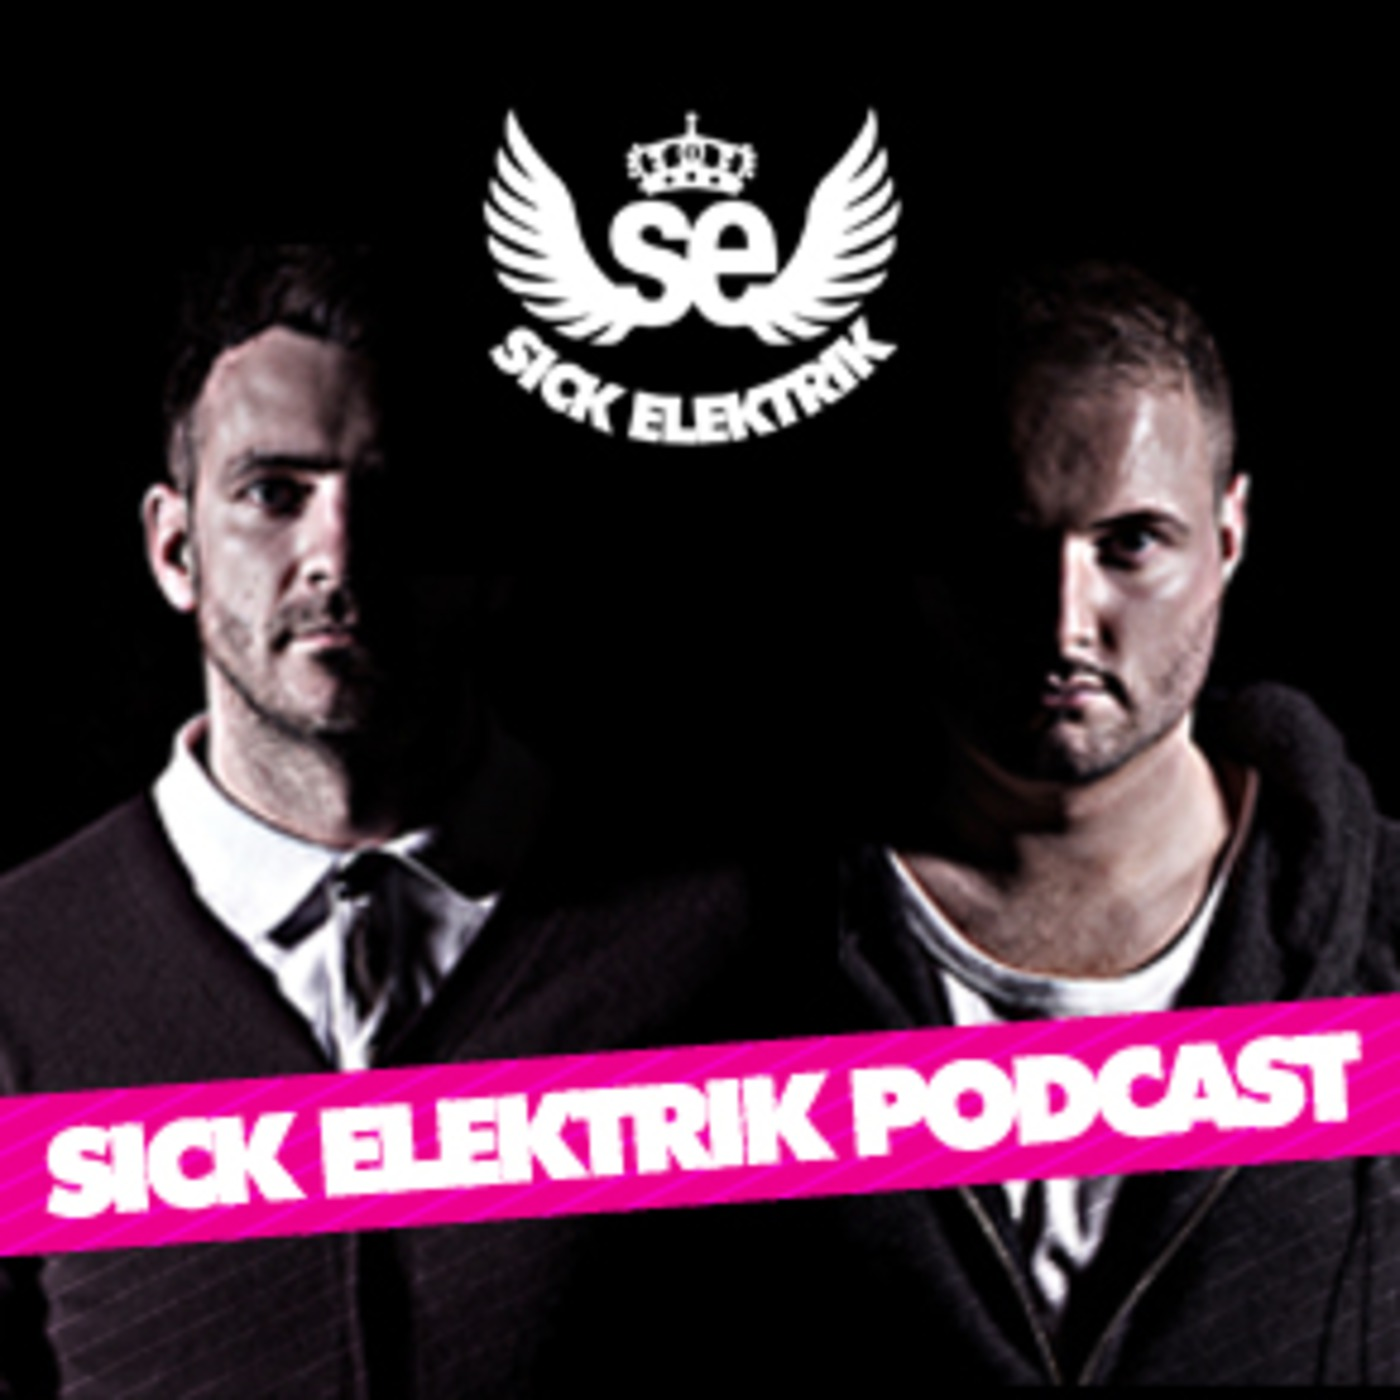 Sick Elektrik Podcasts